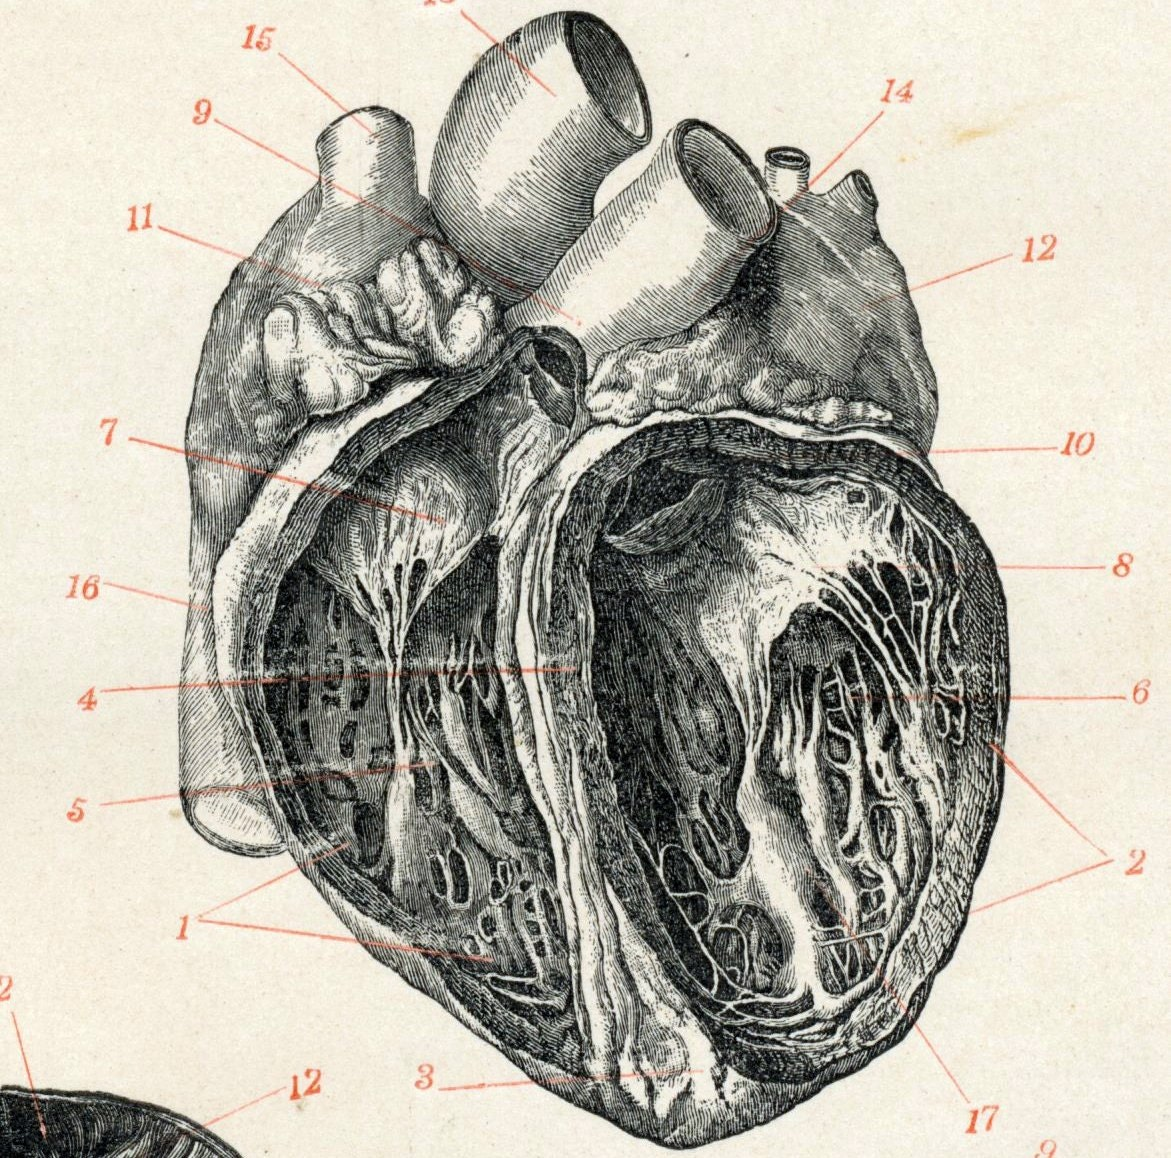 Human heart anatomy vintage - photo#16